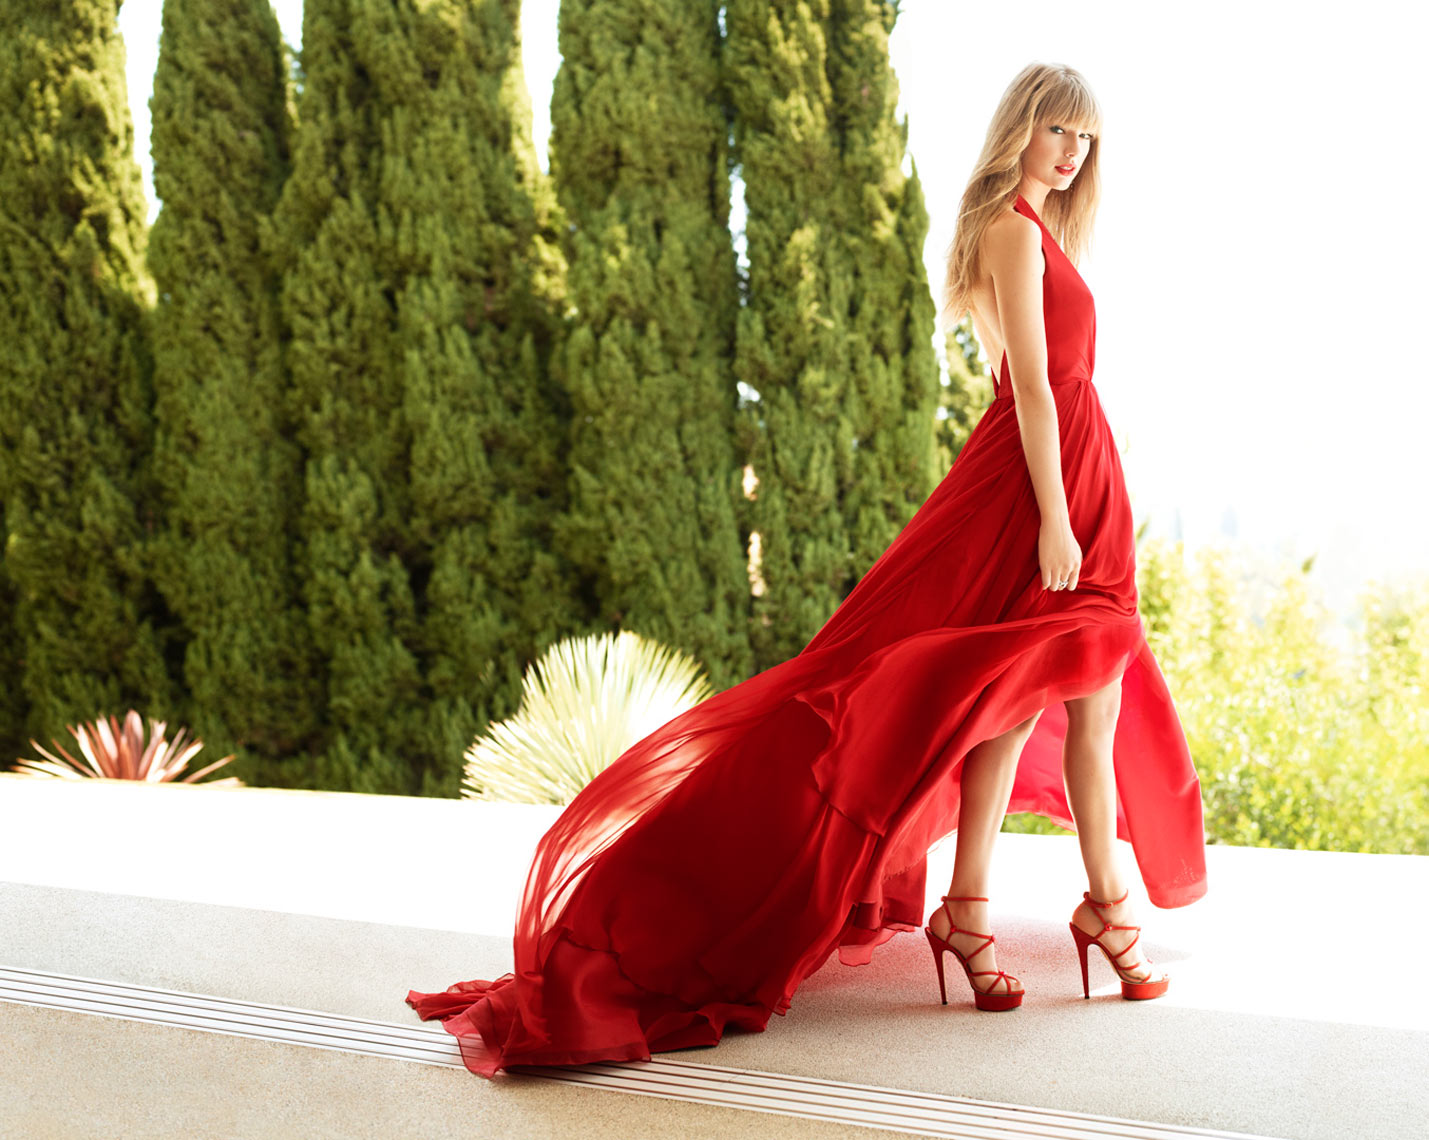 03_Red_Dress_084cr